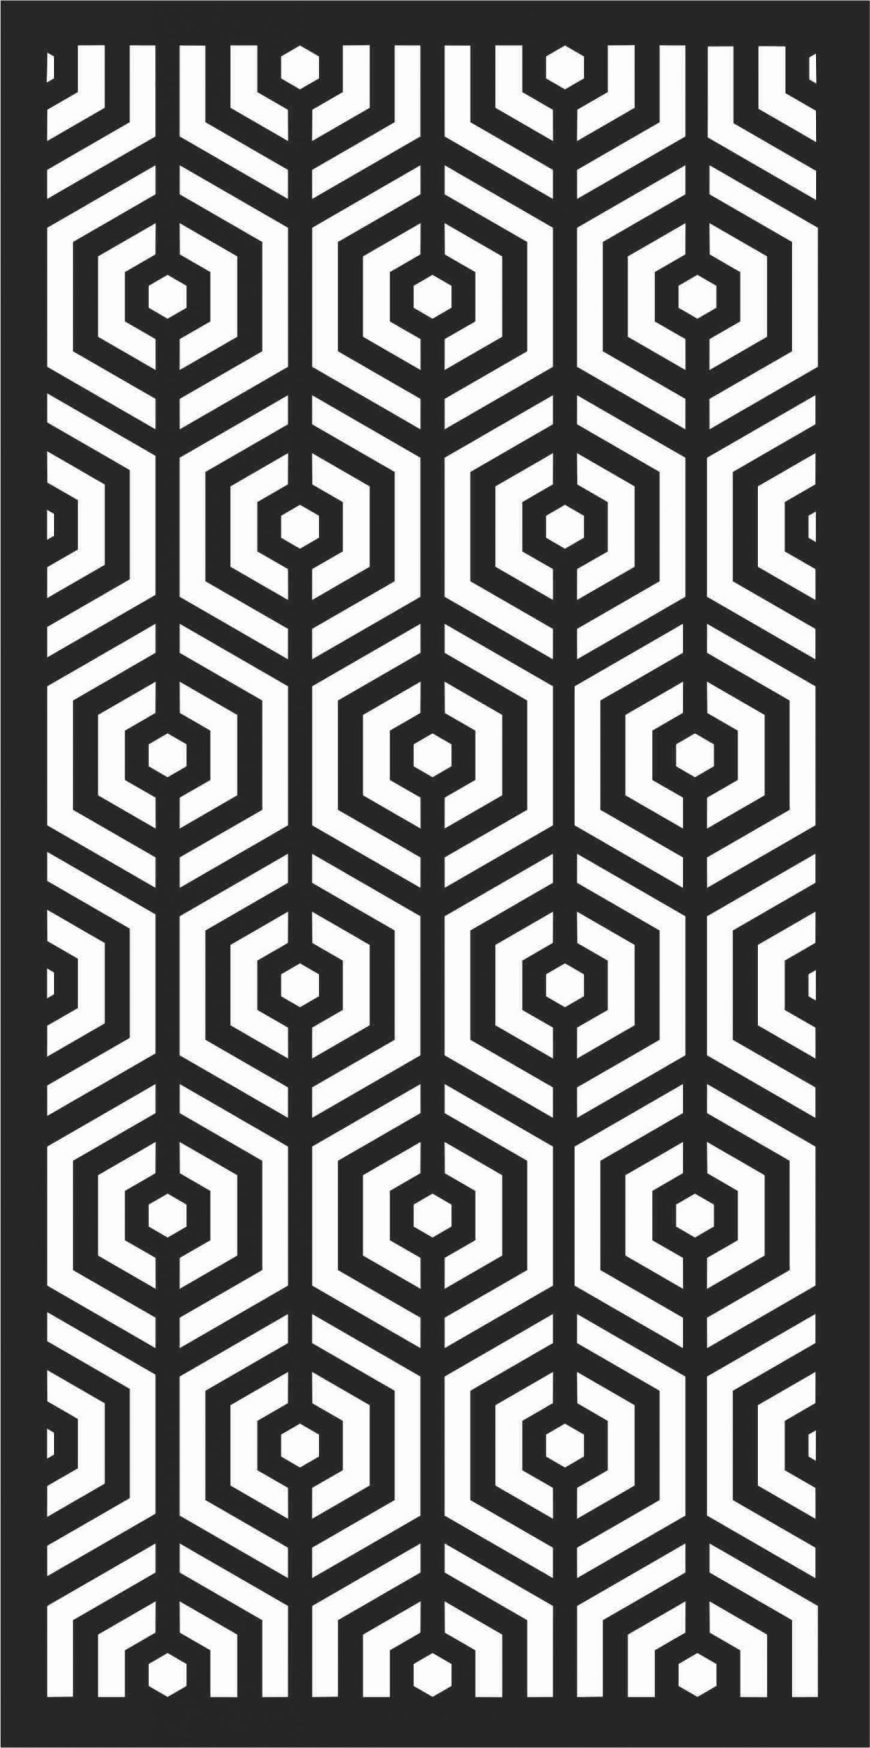 Floral Screen Patterns Design 18 Free DXF File